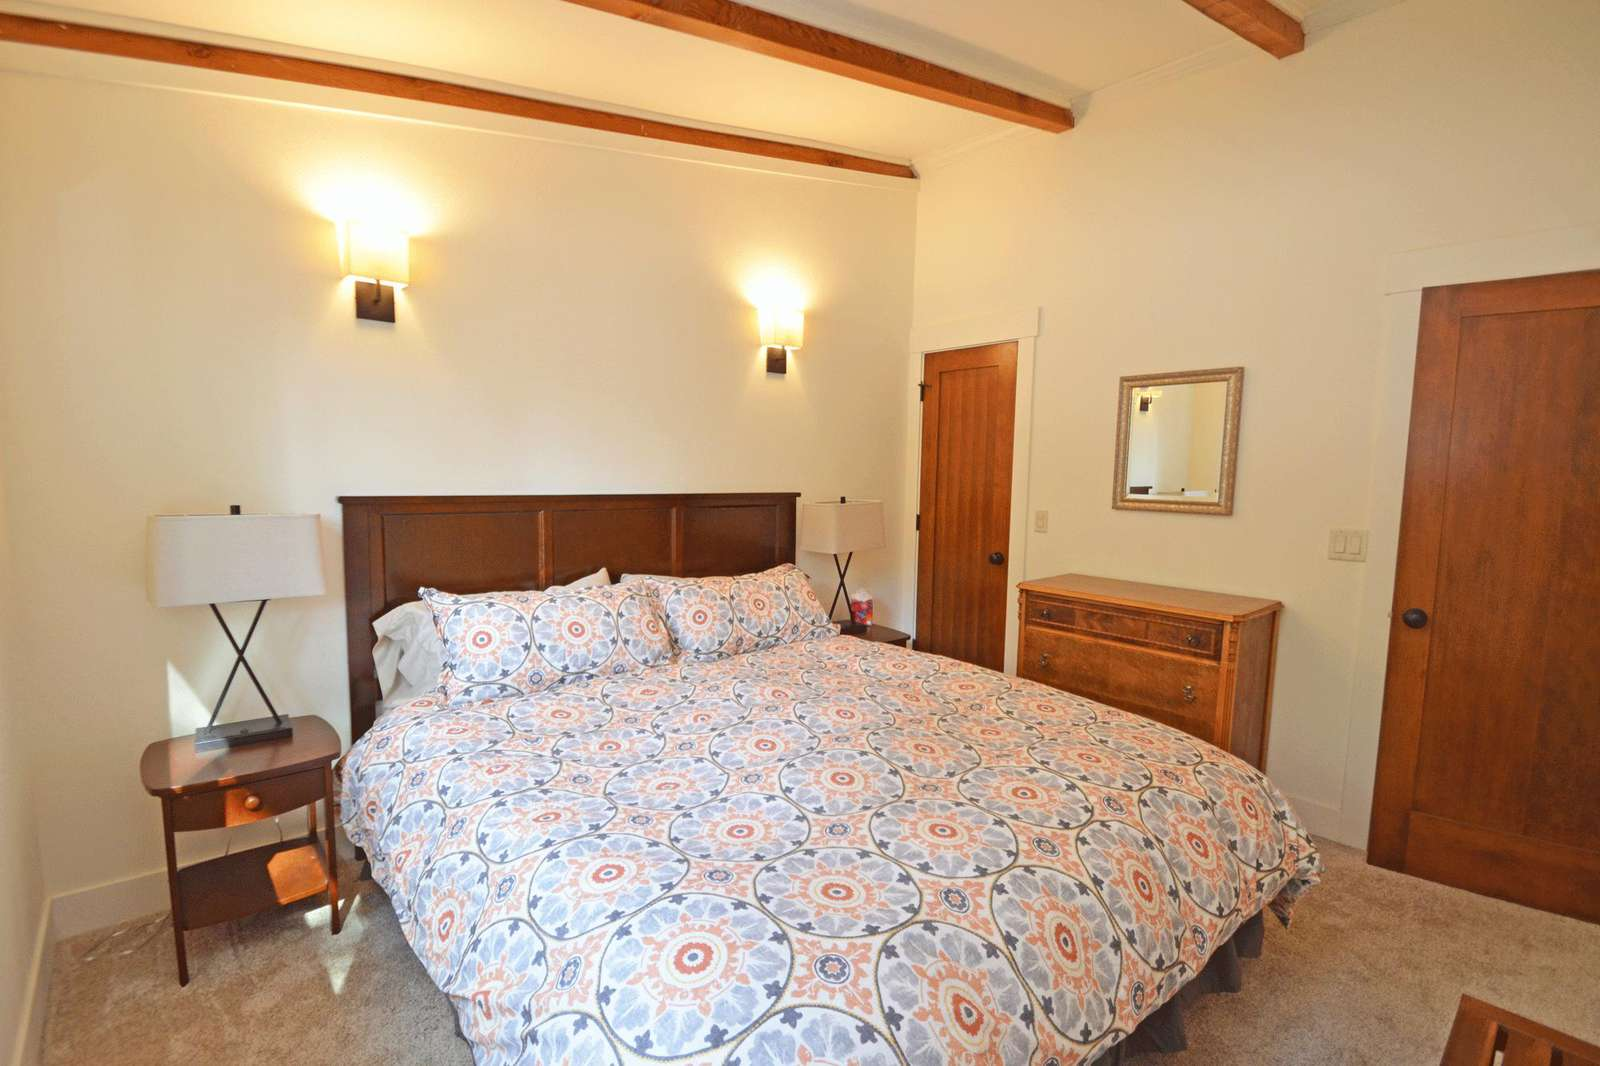 King size bed with down comforter